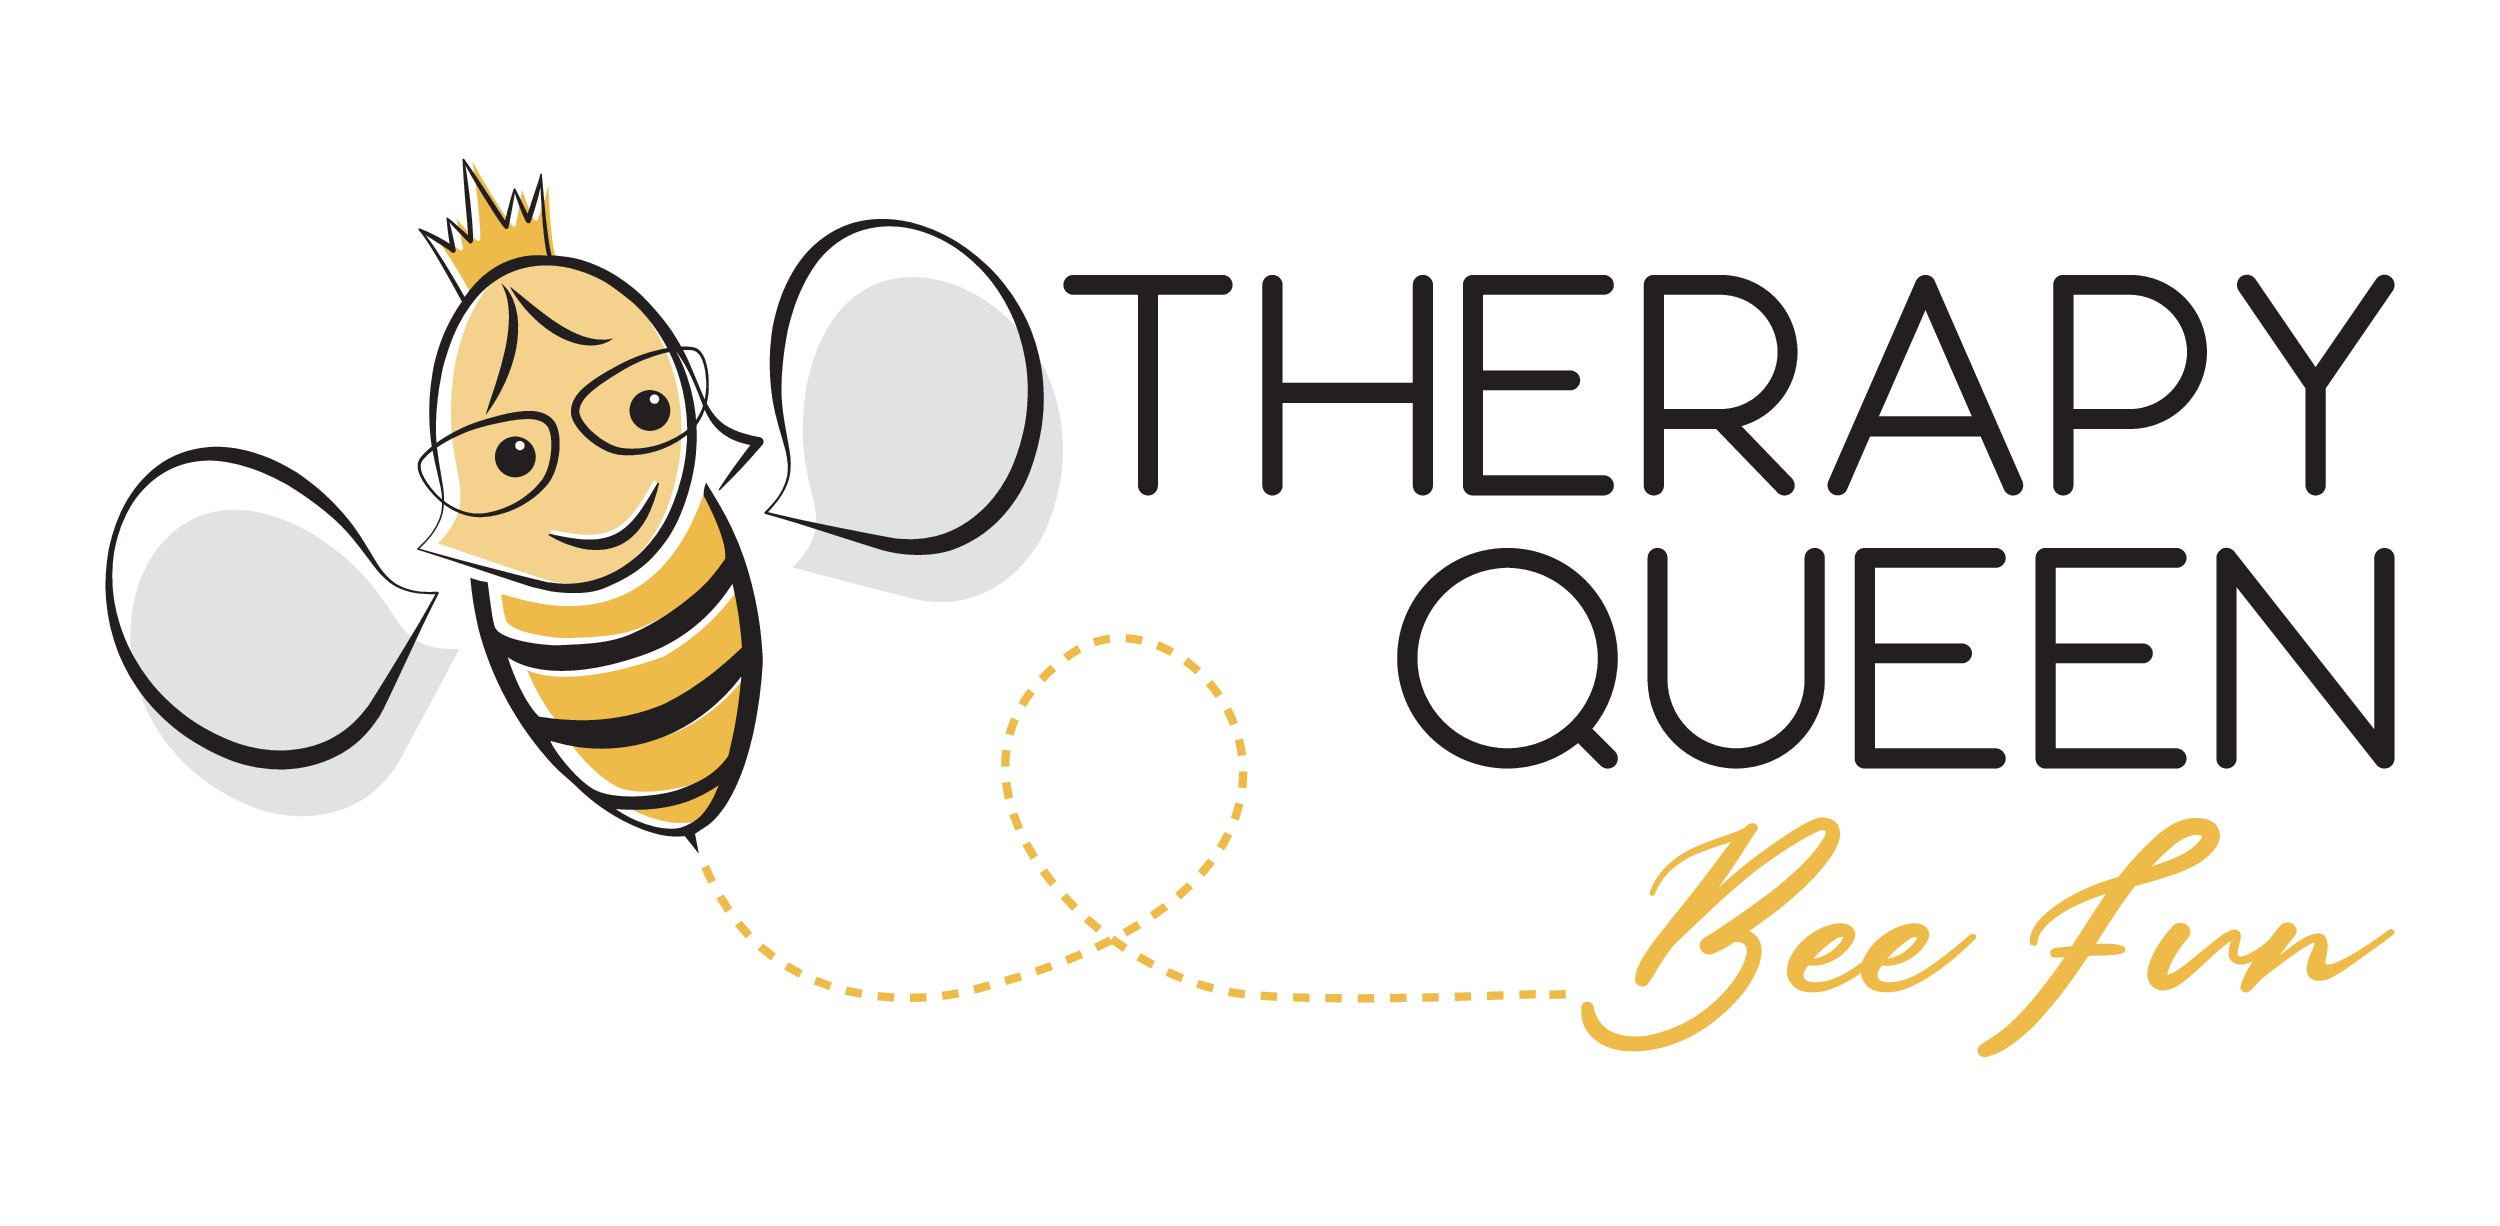 Professional, smart, funny logo needed for Therapy Queen!!